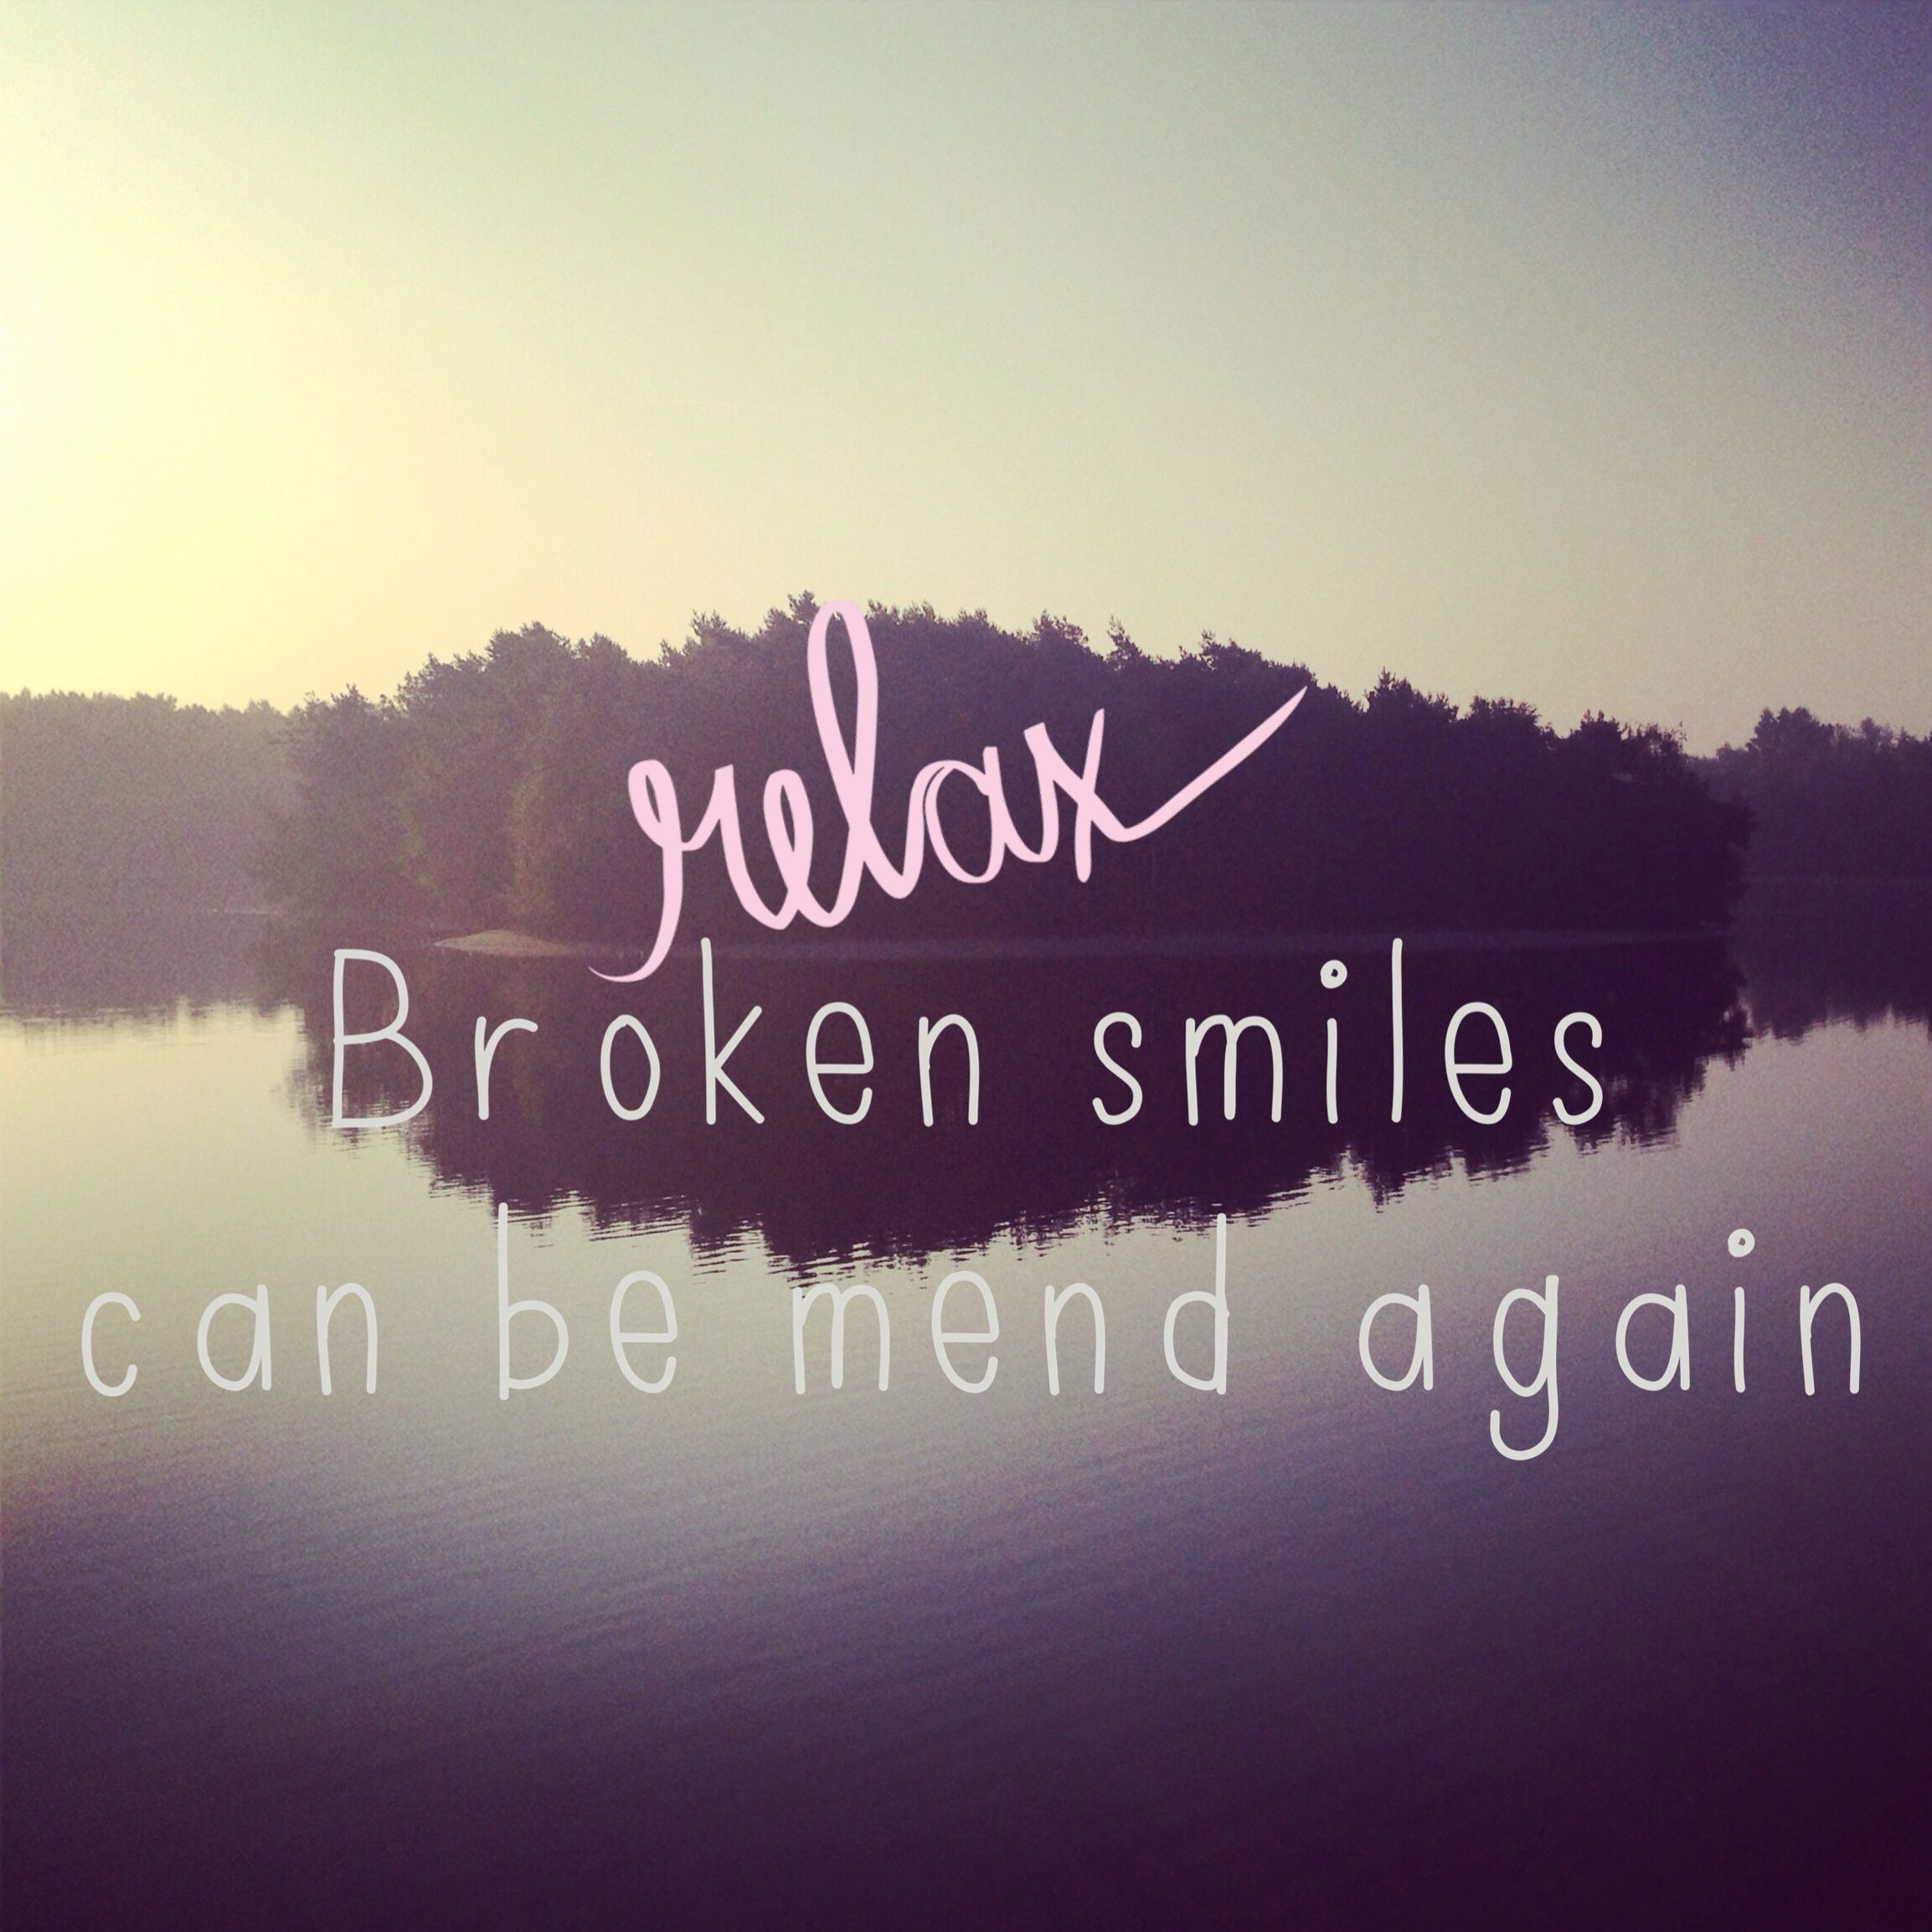 Quotes About Smiles Smiles Broken Quote Relax Smile Love Wise  Words Pinterest